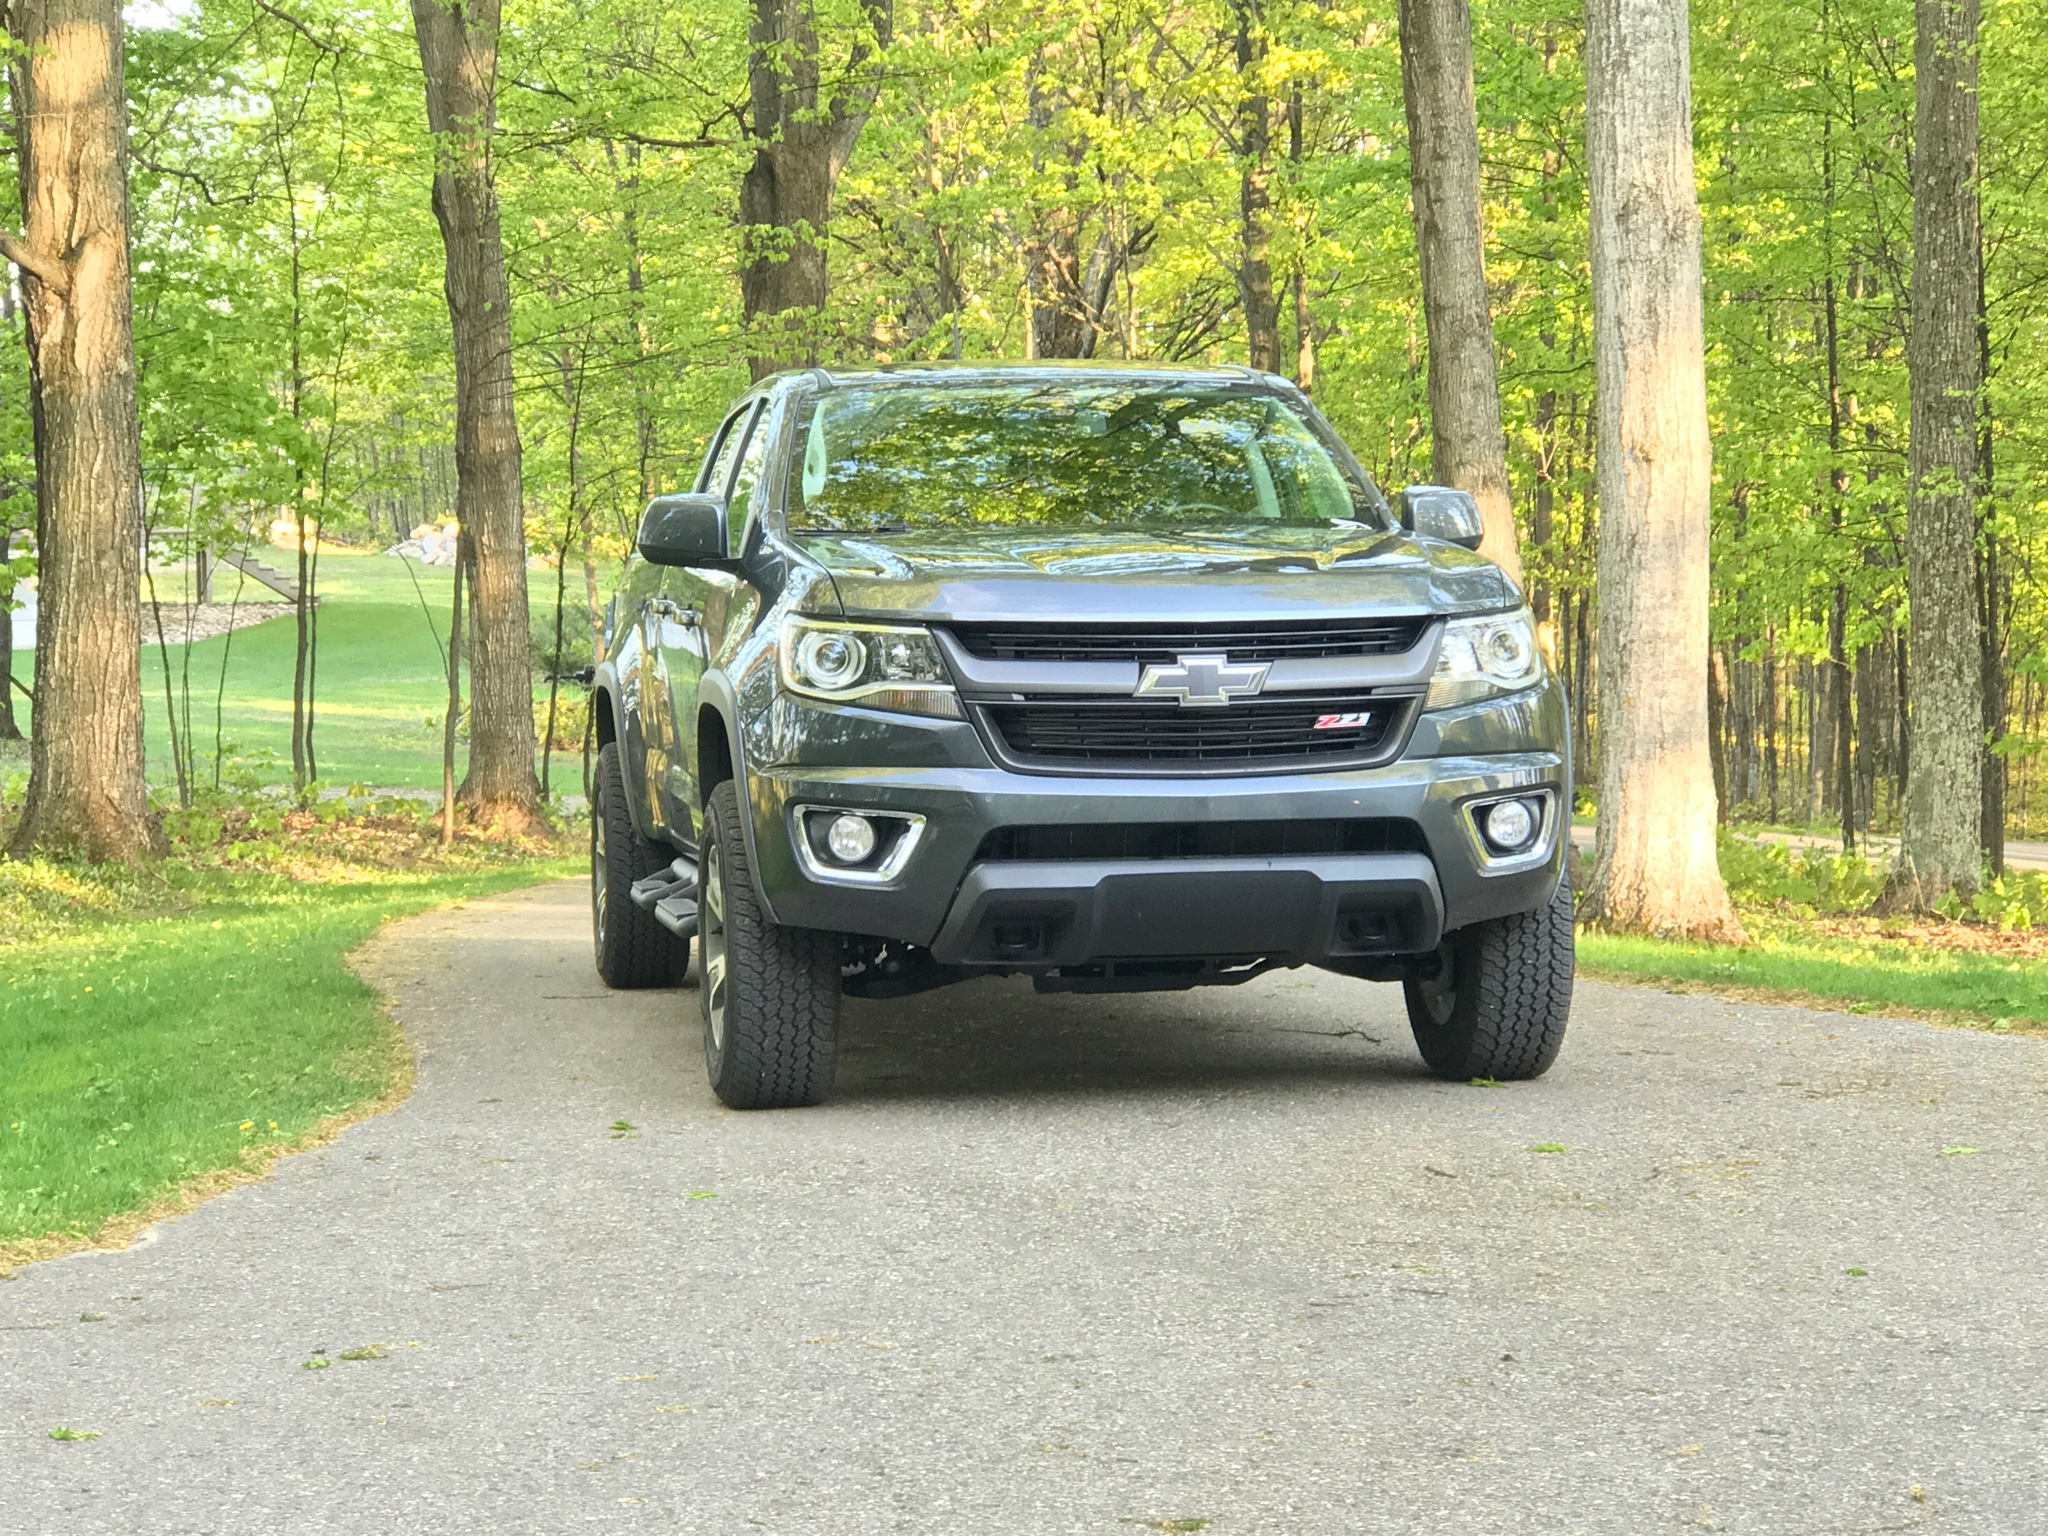 1 25 Spacers Work With Z71 Wheels And No Lift Chevy Colorado Gmc Canyon